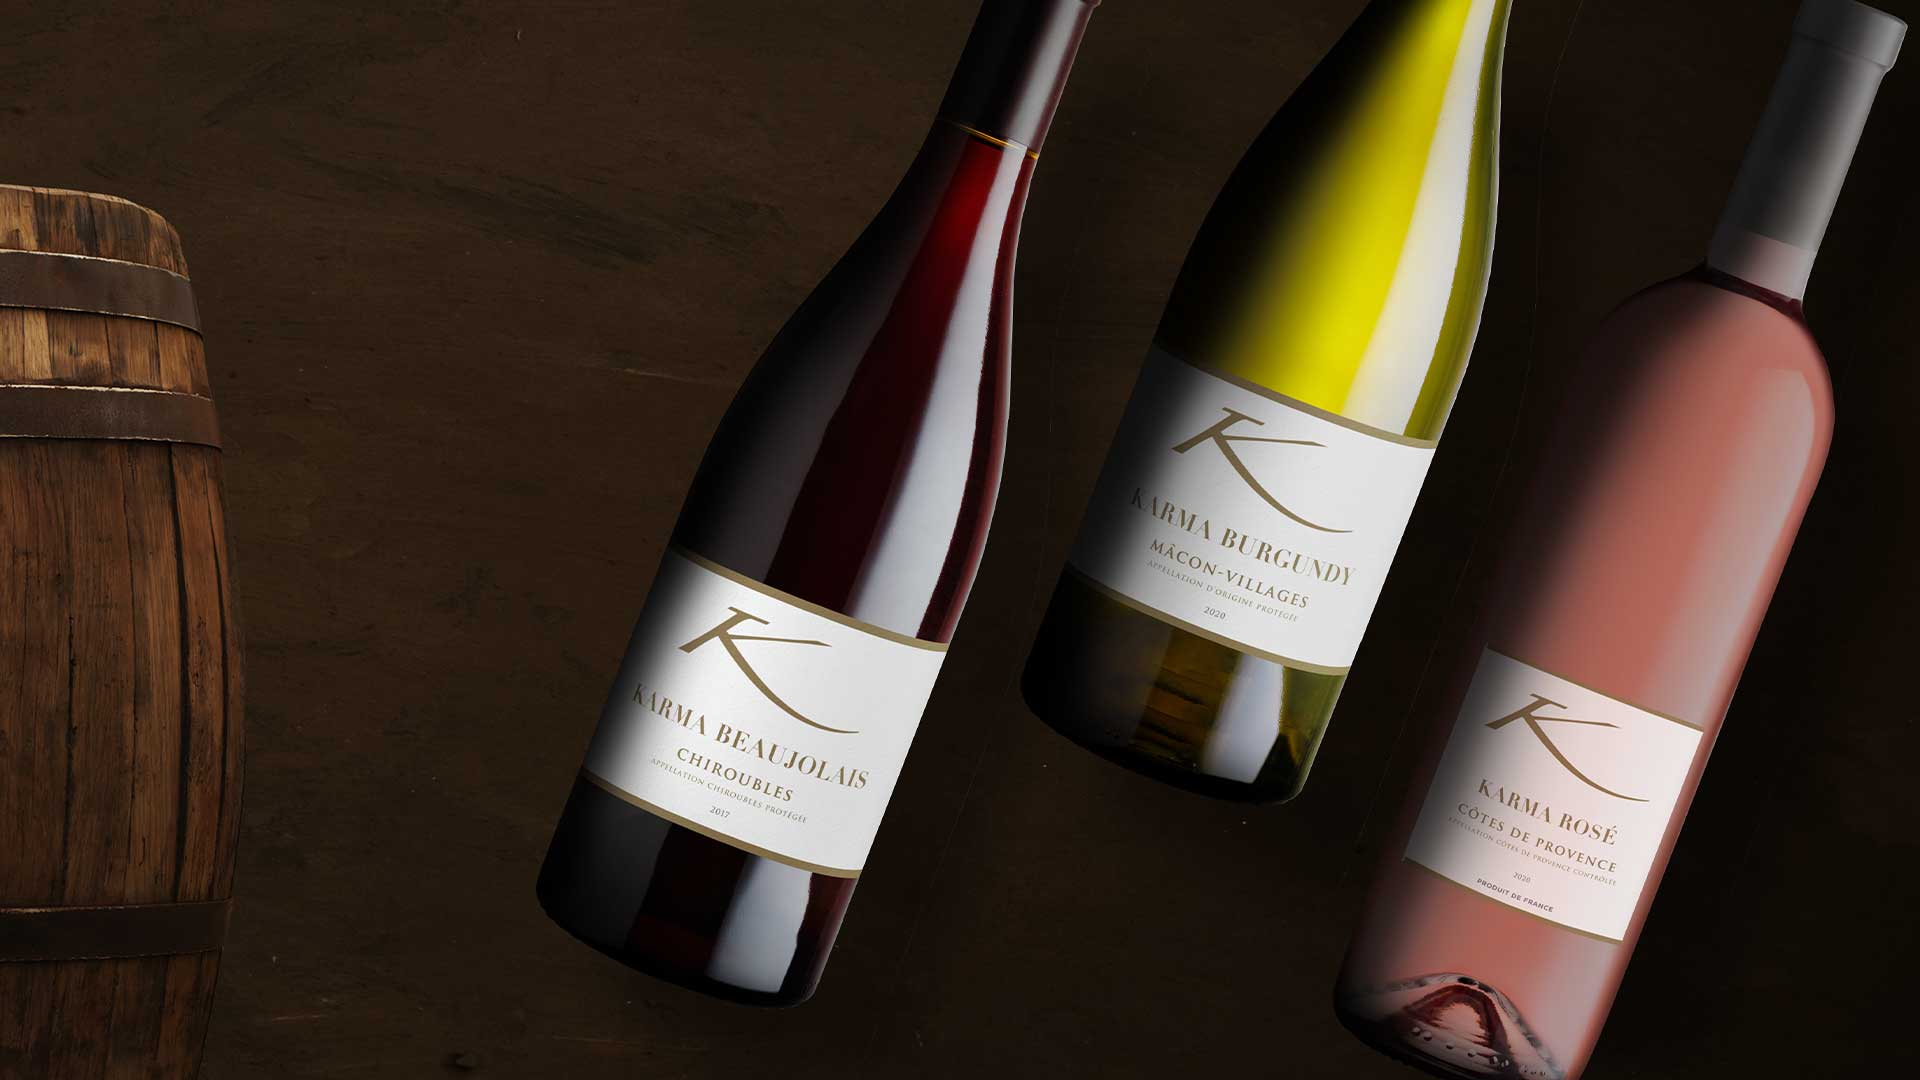 Sante! Karma Group Launches Three New Wines